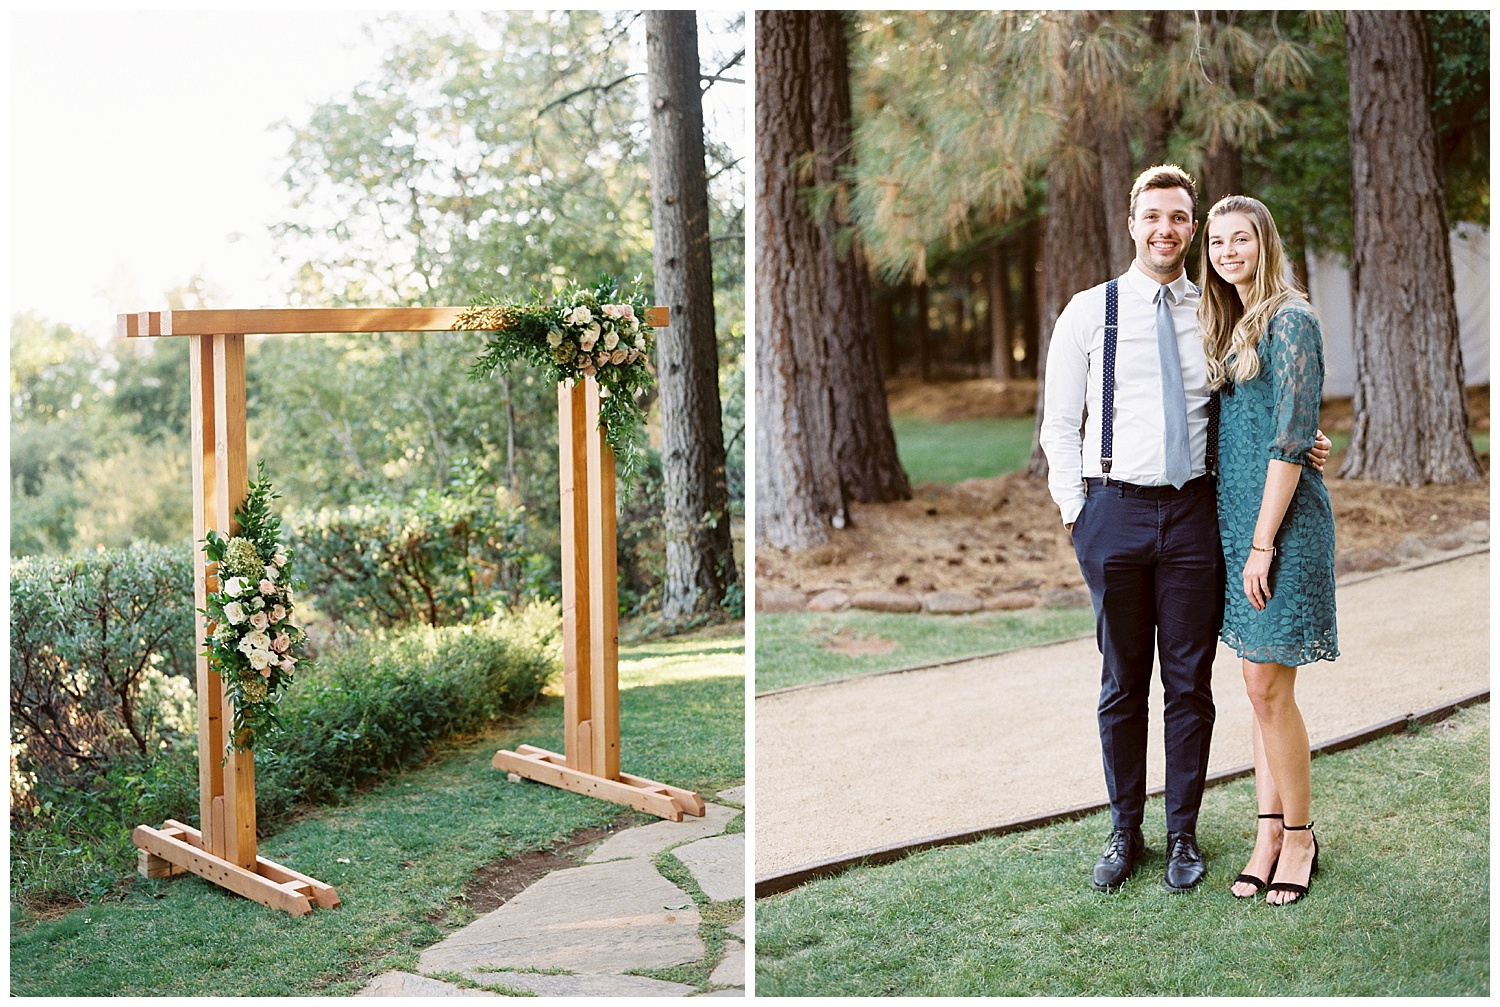 Forest-house-lodge-wedding-foresthill-california-1-4.jpg